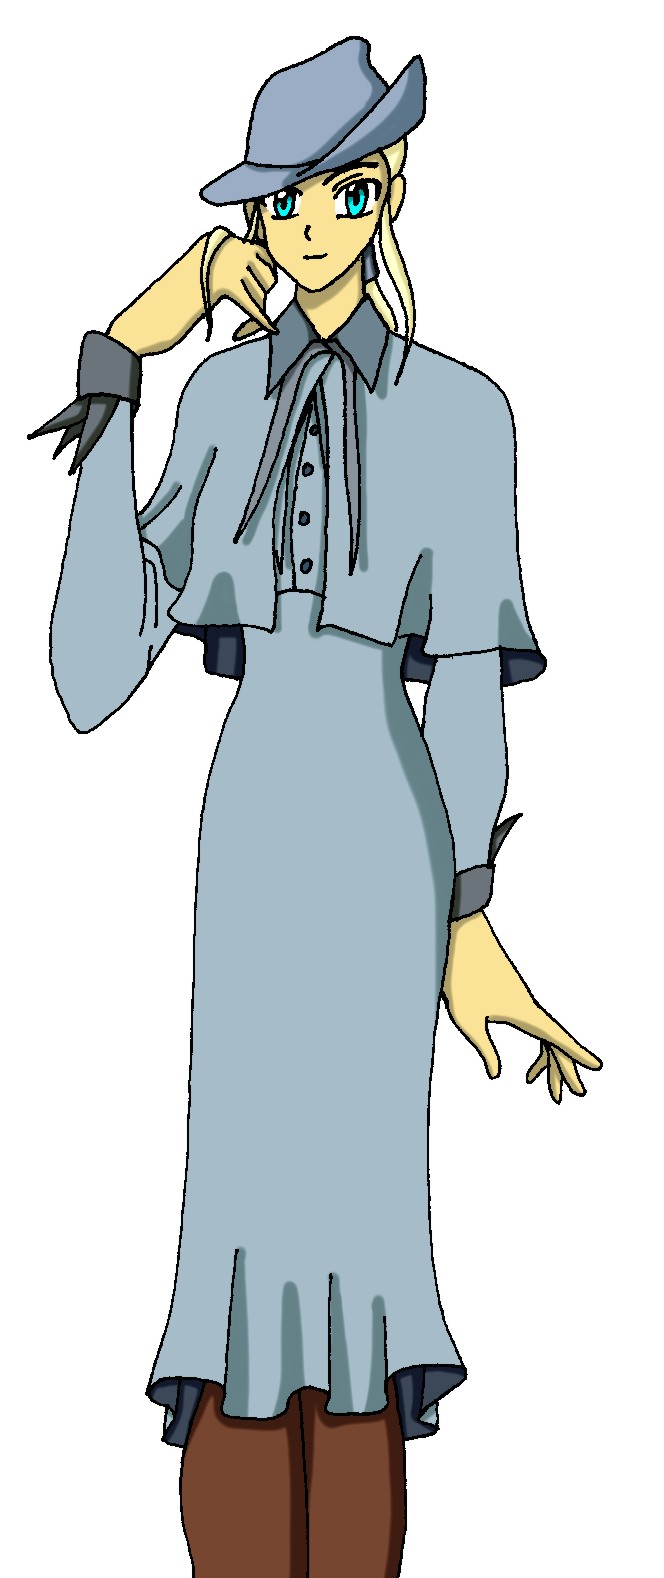 how tall is fleur delcaour